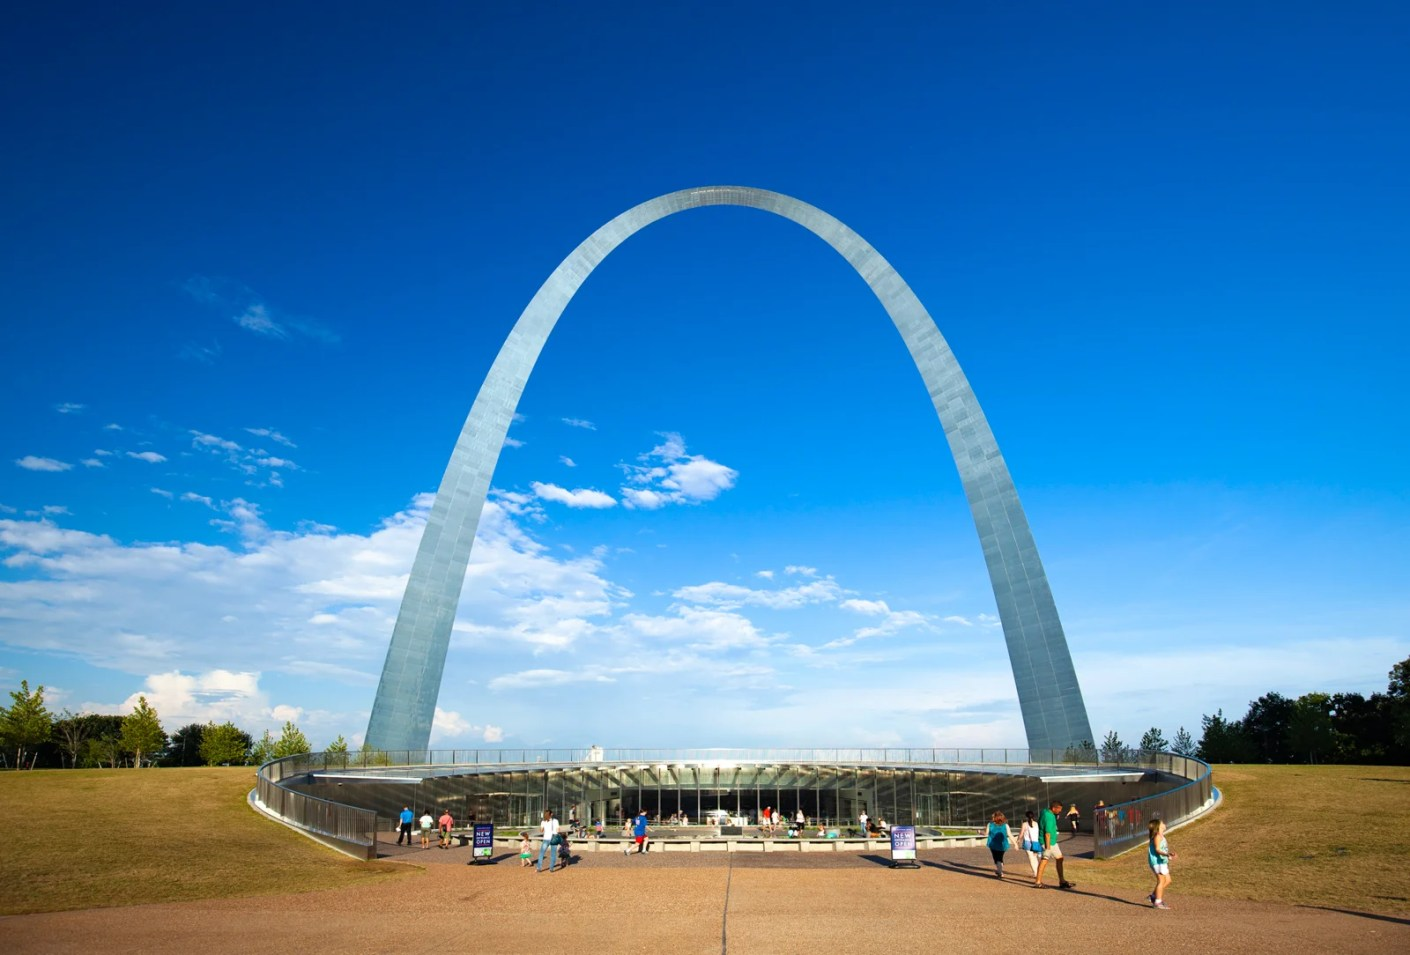 The Gateway Arch Museum in St. Louis. (Photo by traveler1116 / Getty Images)